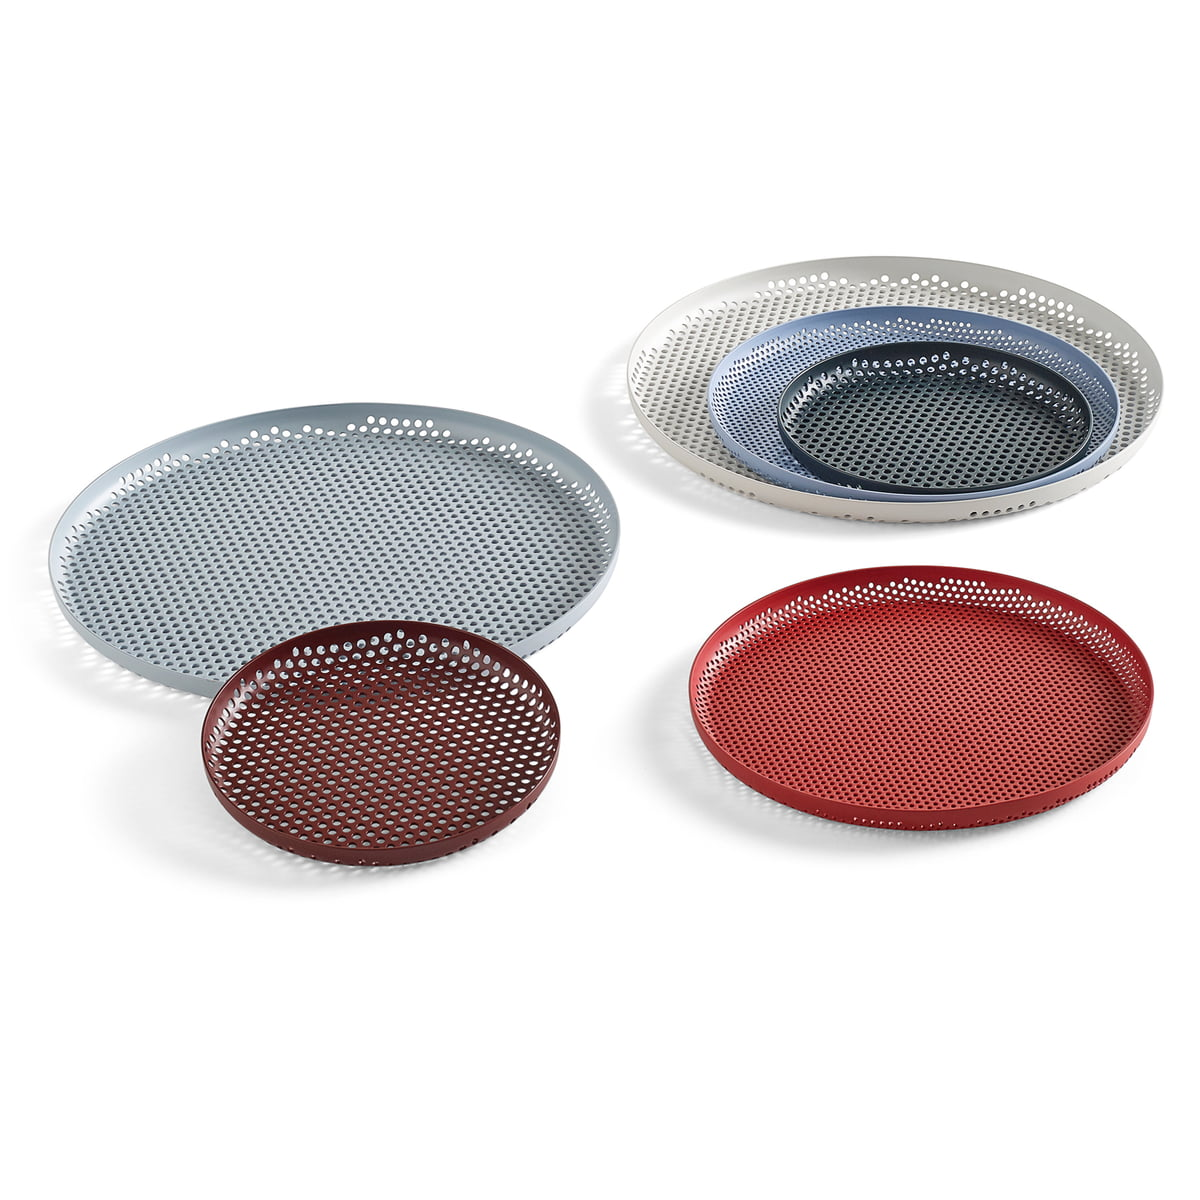 Perforated Tray Von Hay Connoxch